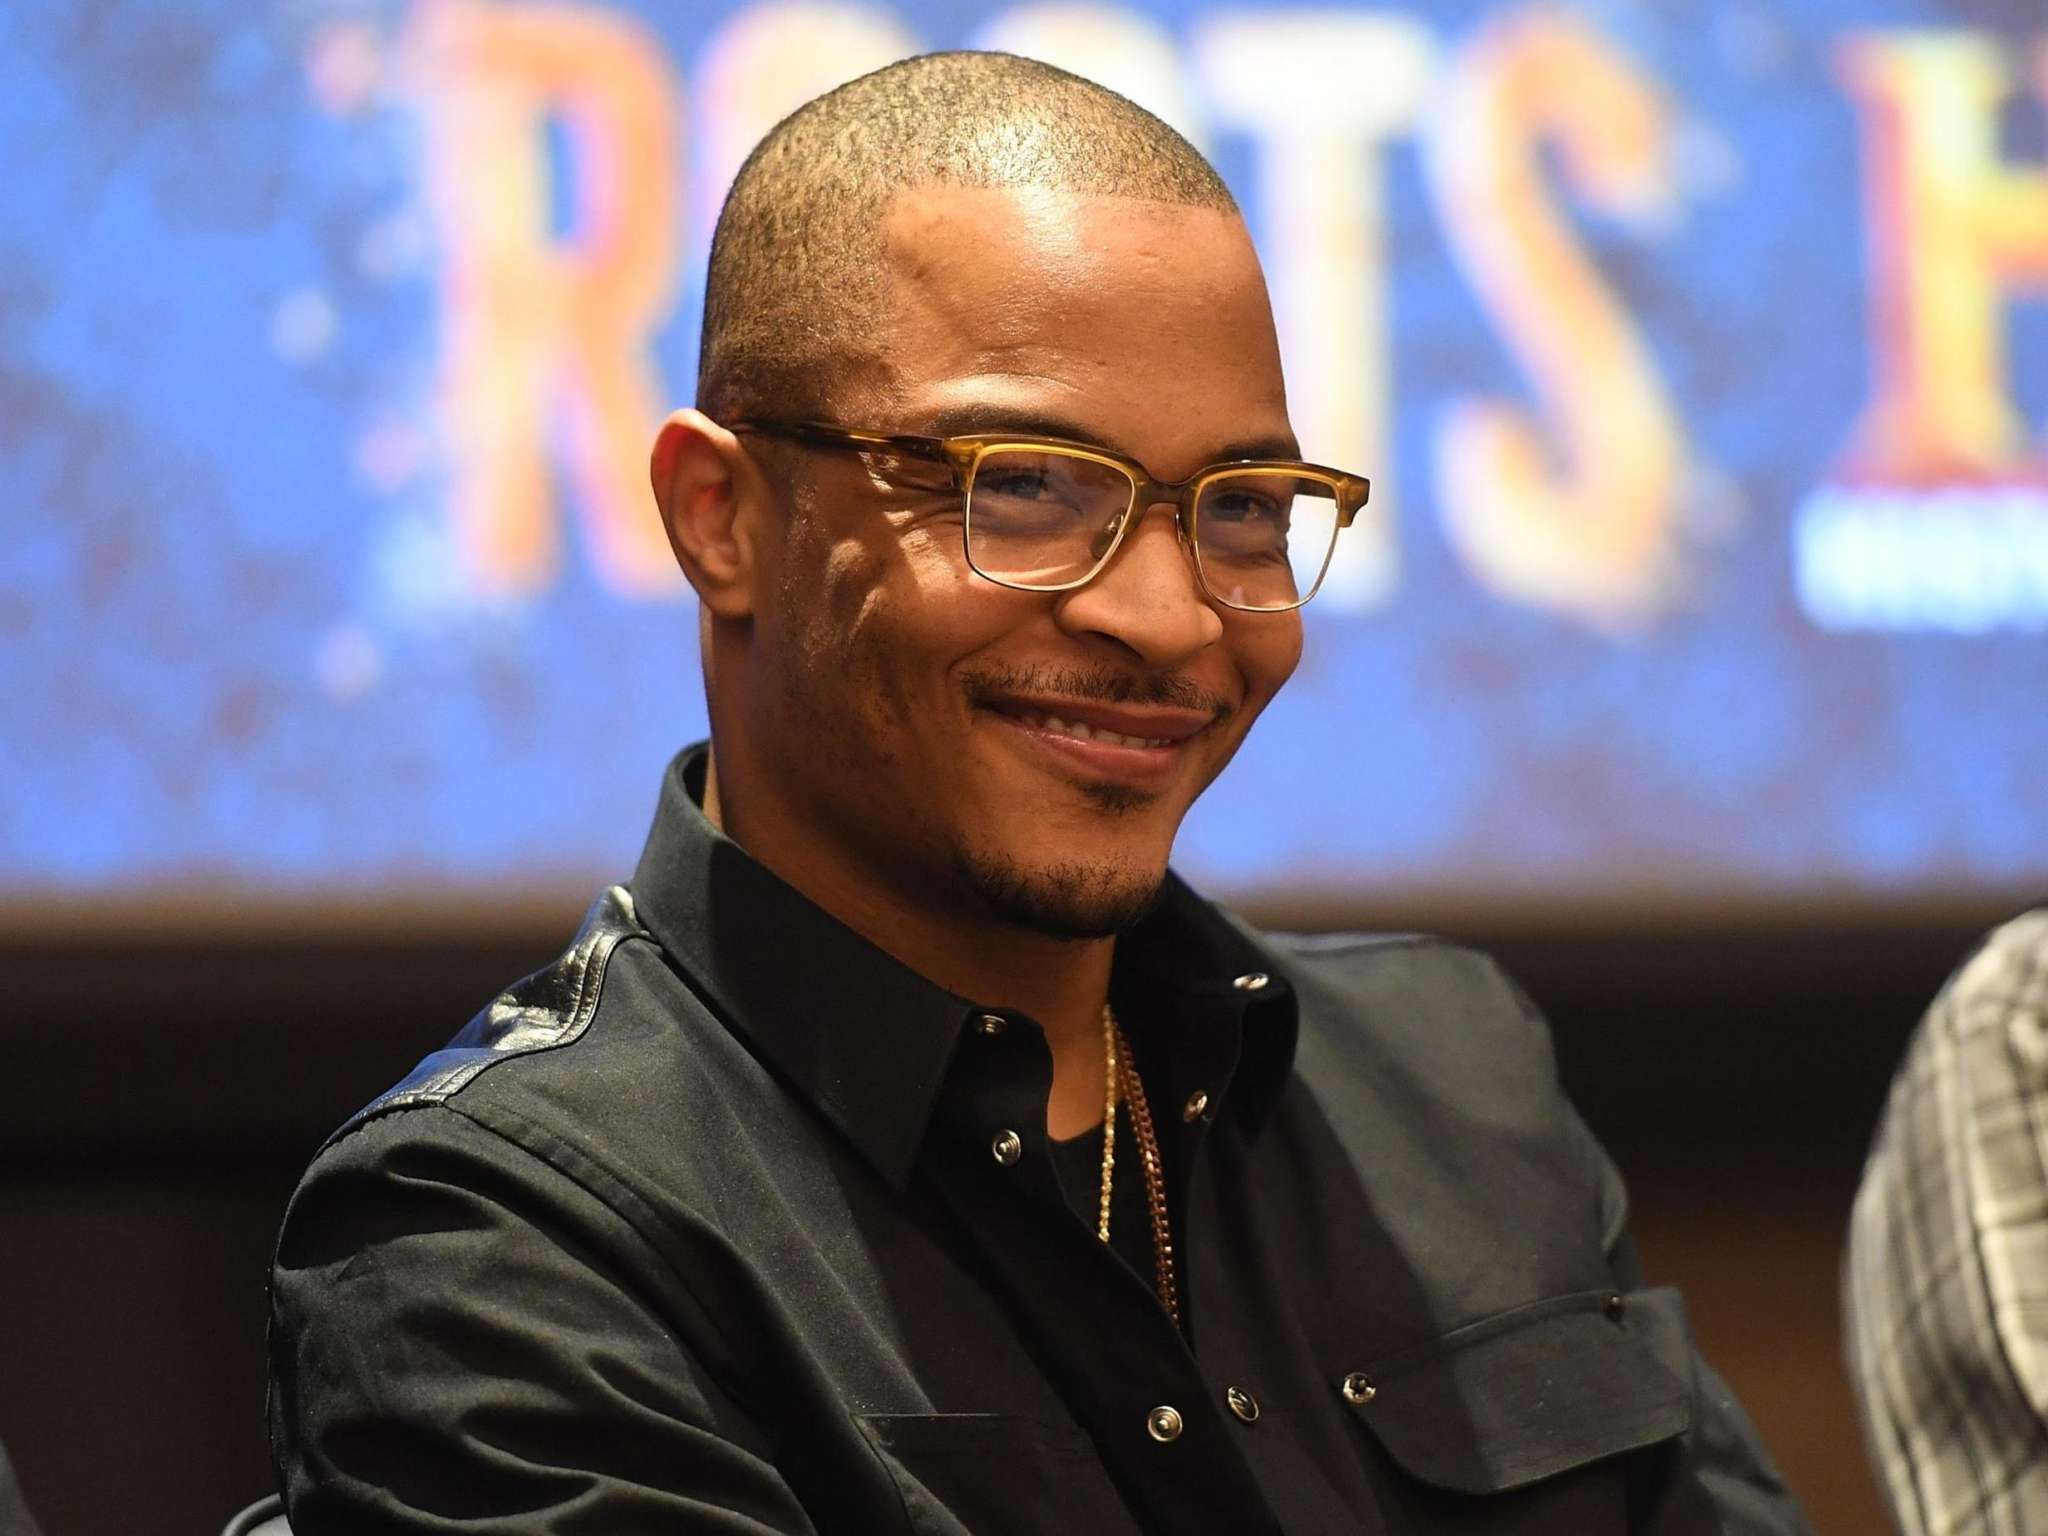 T.I. Shares An Inspirational Story On His Podcast - See The Clips